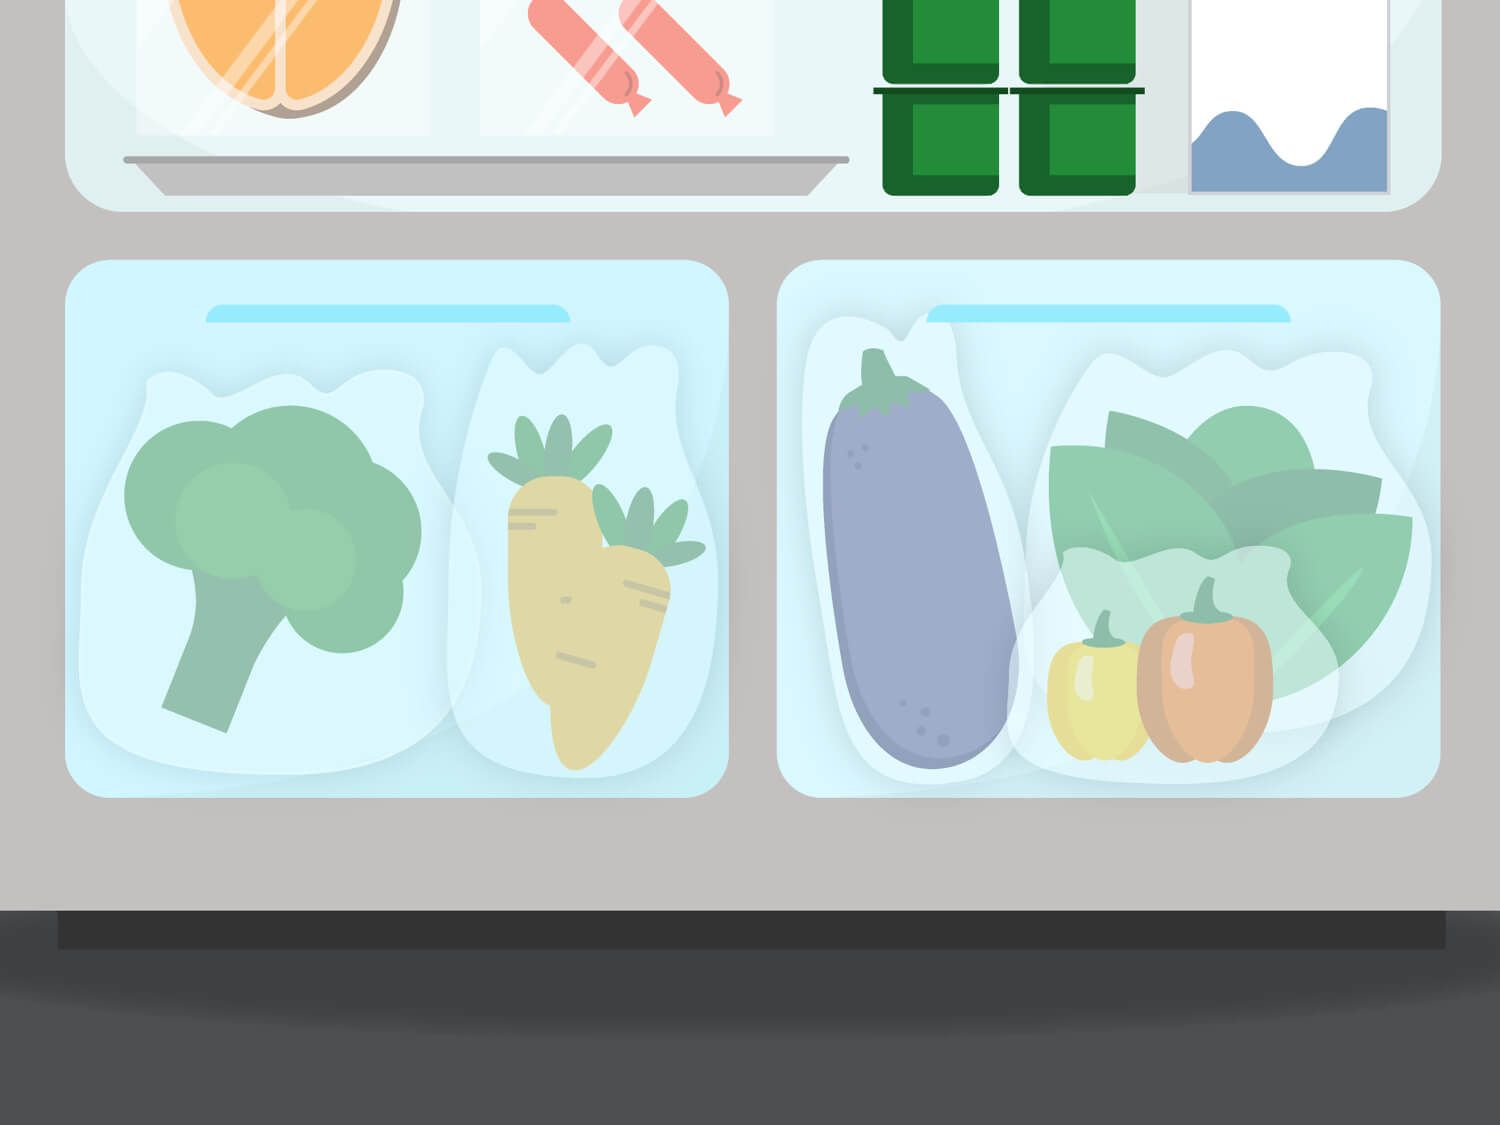 Graphic illustration of the crisper drawers in a refrigerator, holding various vegetables